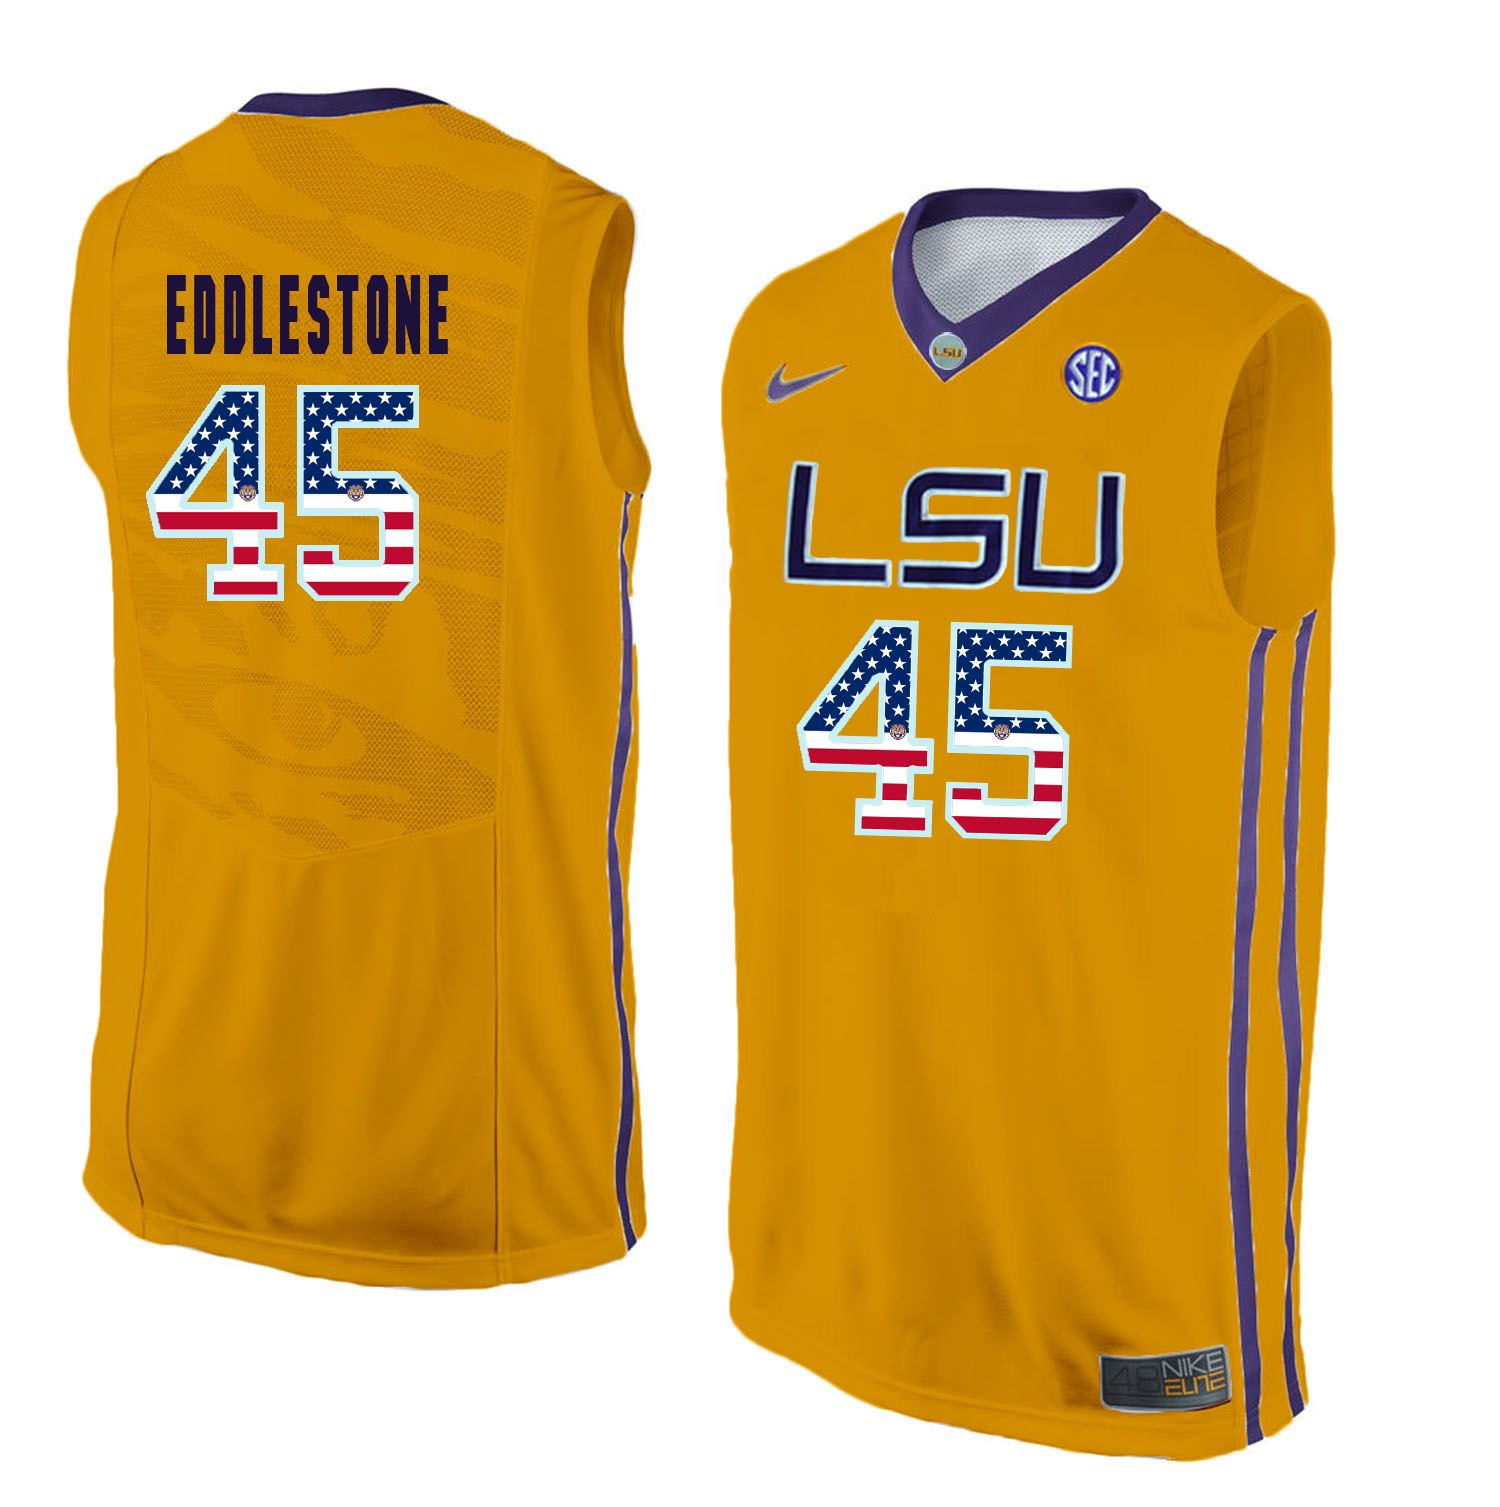 Men LSU Tigers 45 Eddlestone Yellow Flag Customized NCAA Jerseys